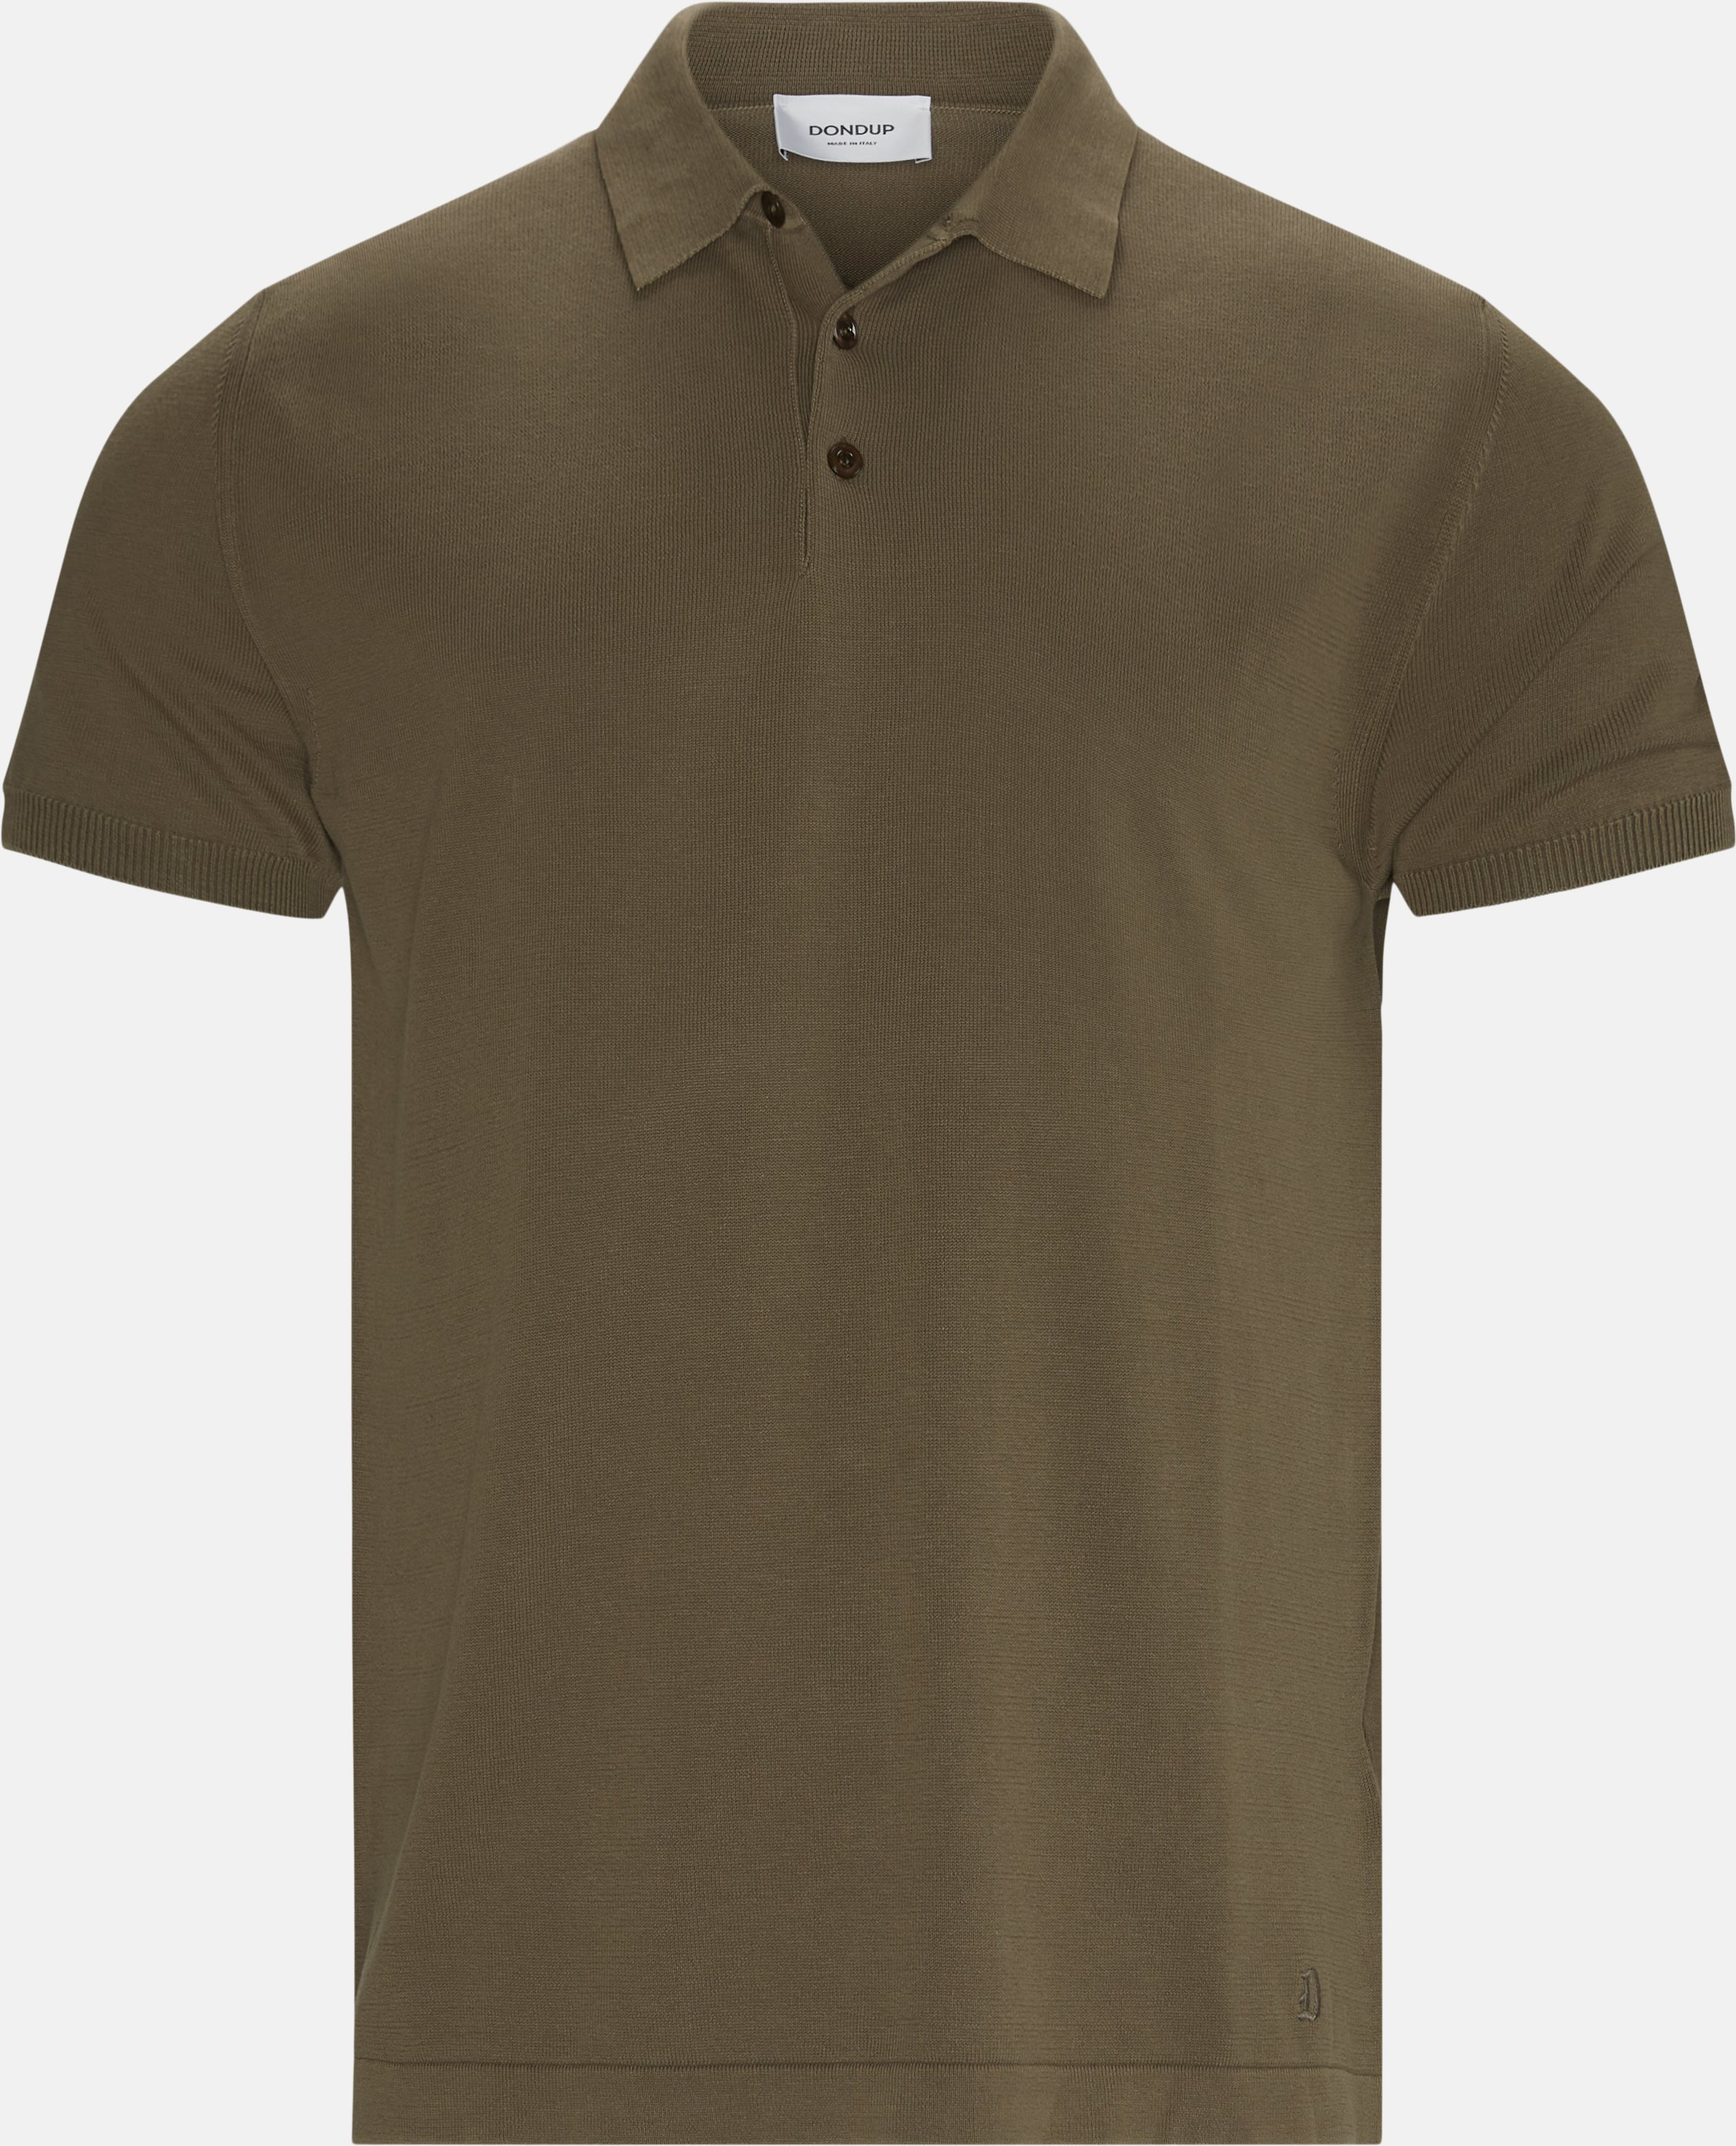 Polo T-shirt - T-shirts - Regular - Brun